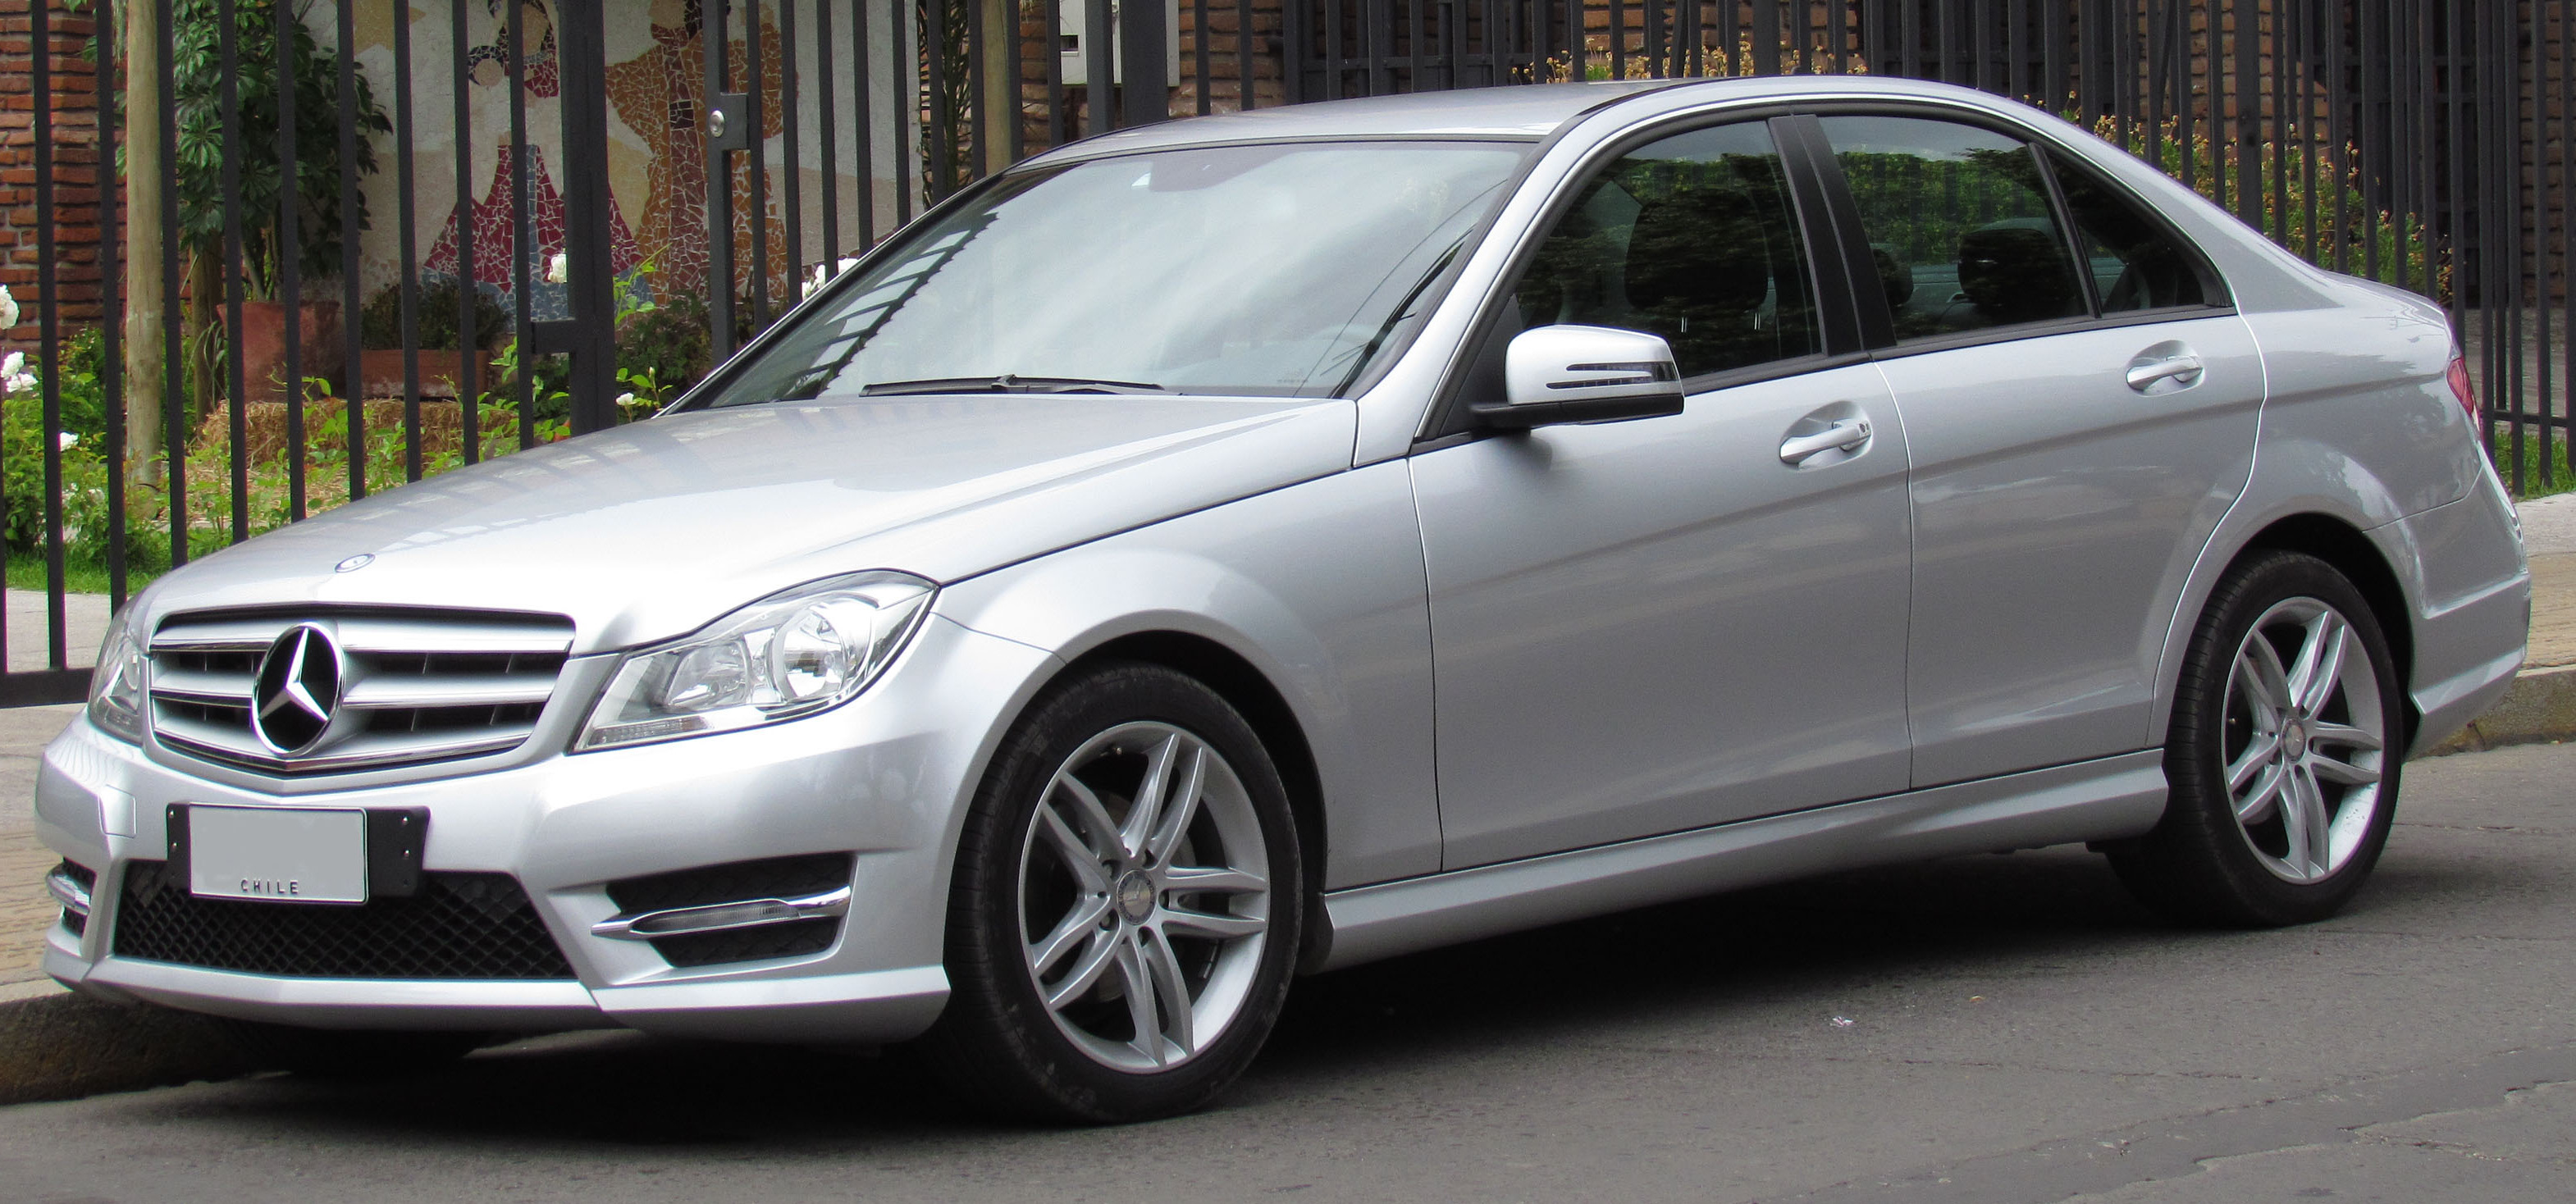 mercedes benz c class w204 facelift 2011 c 250 cdi 4matic 204 hp. Black Bedroom Furniture Sets. Home Design Ideas